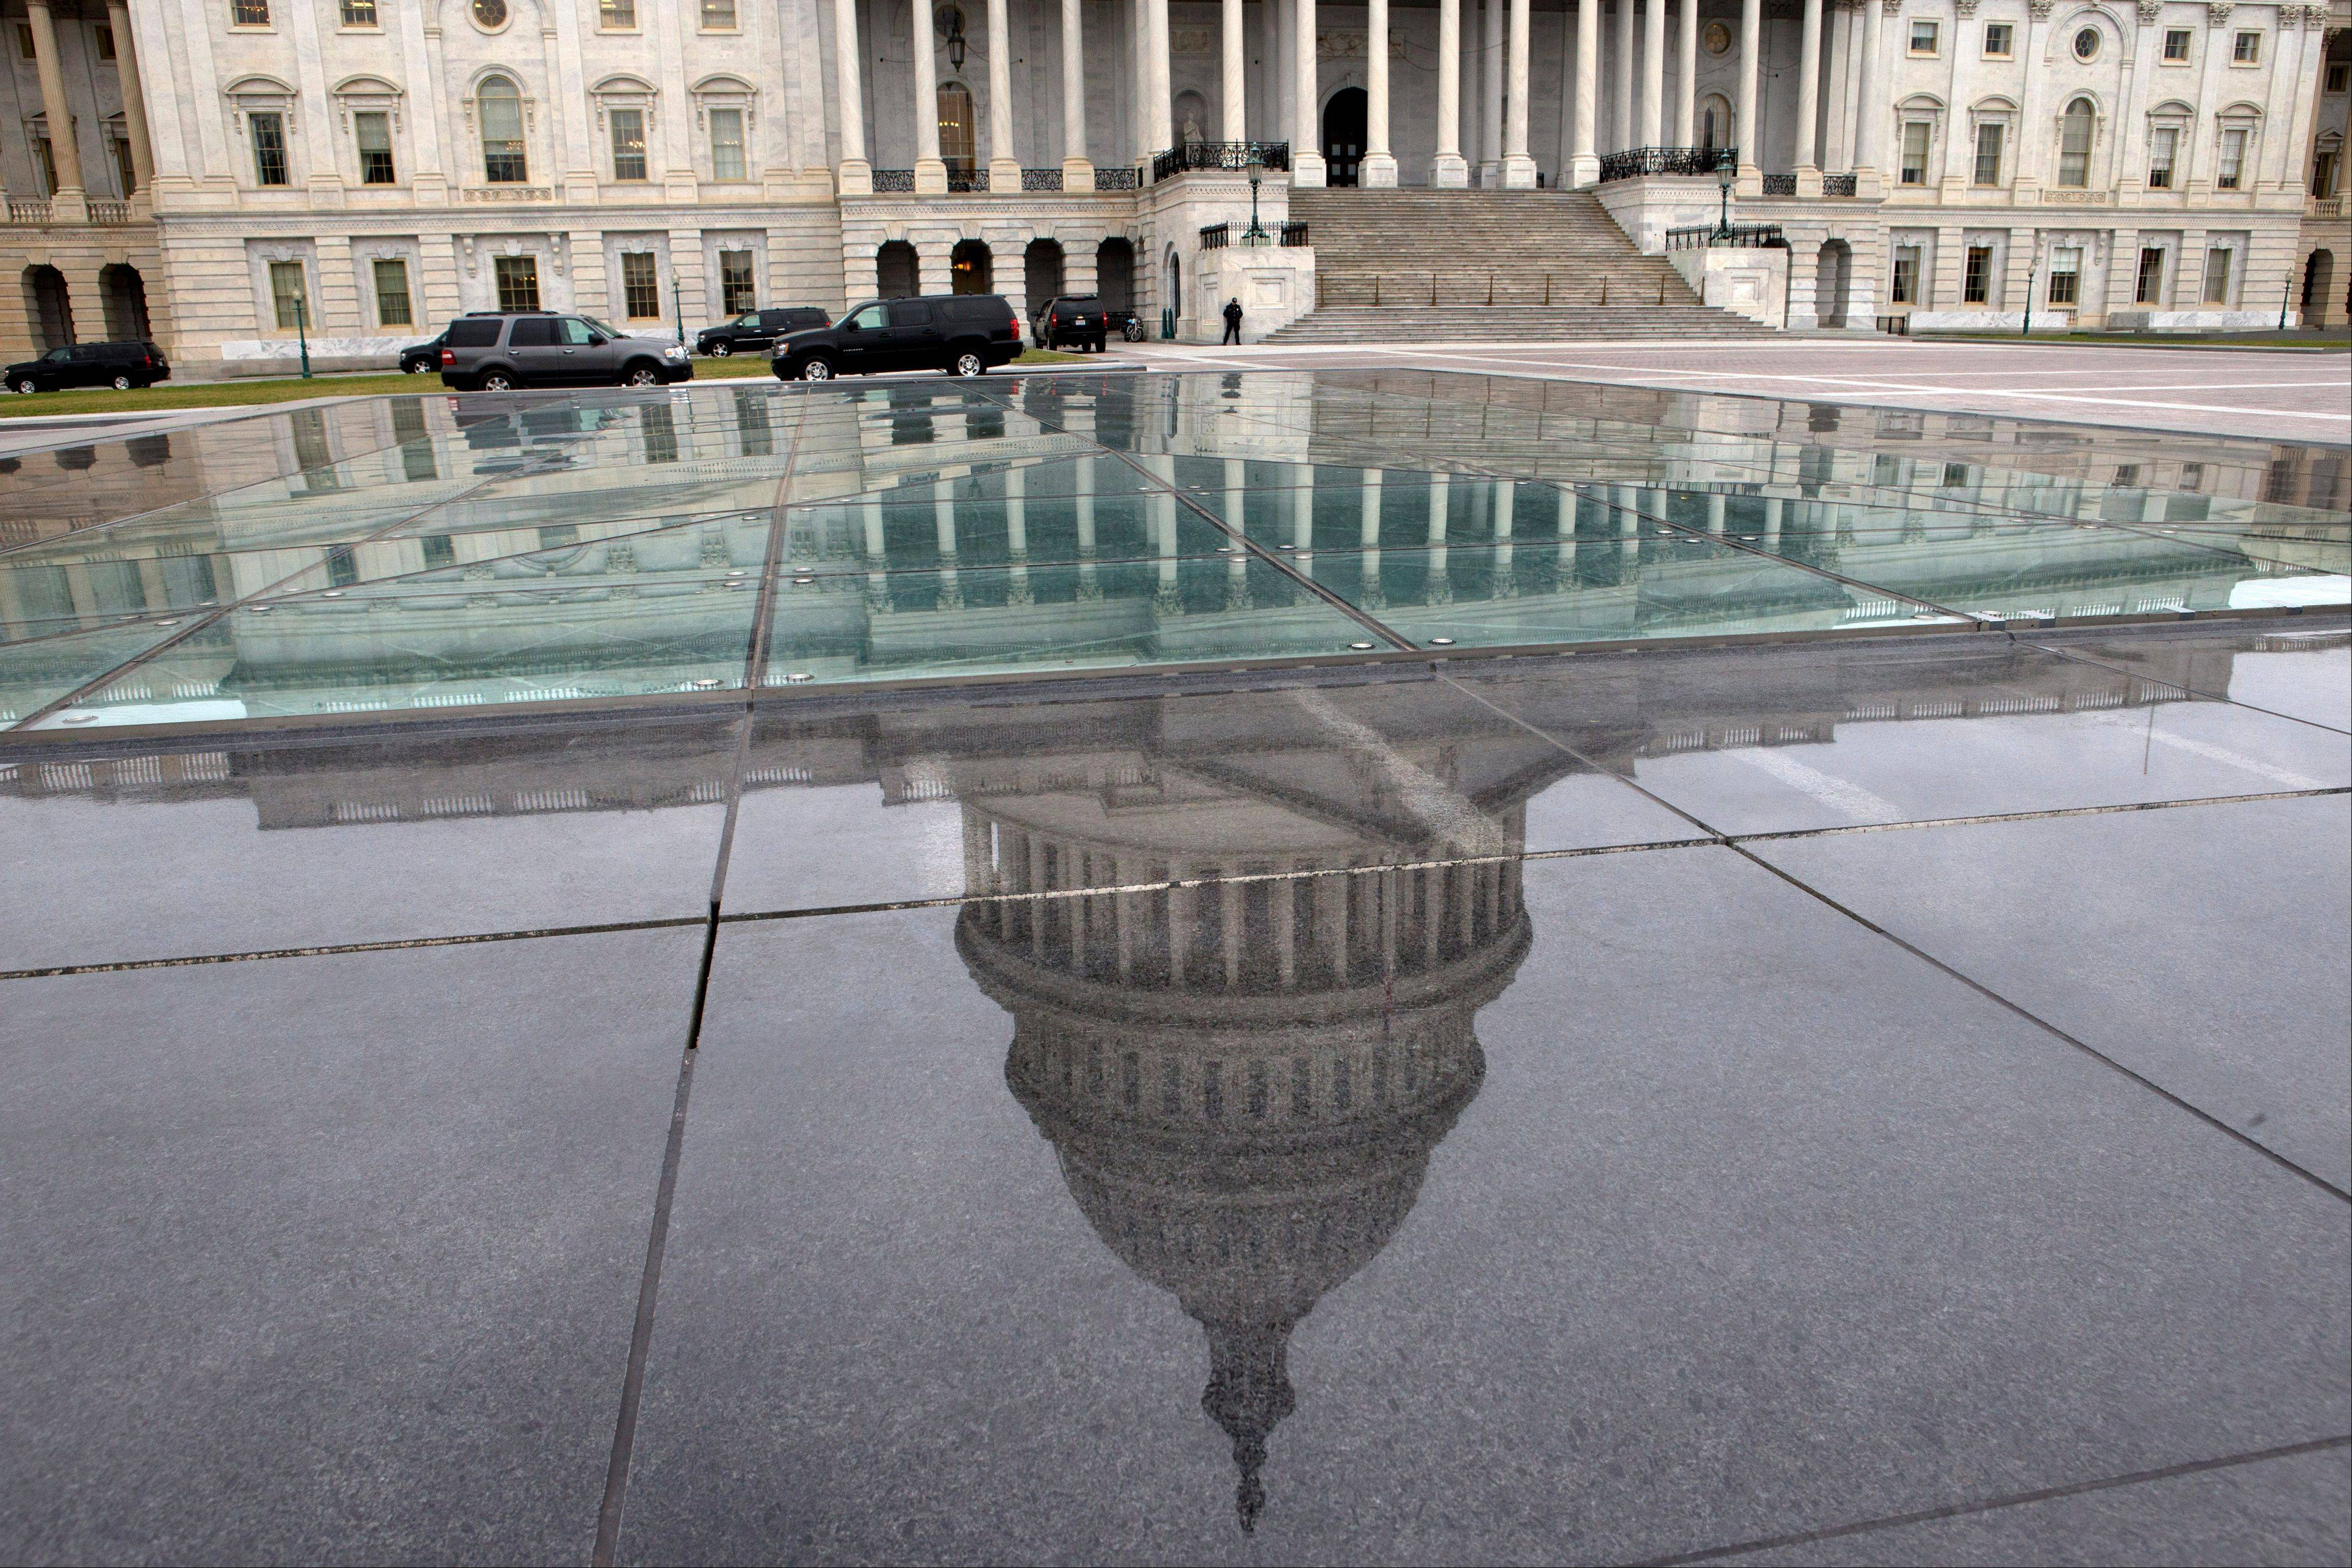 The Senate Thursday passed must-do legislation Thursday to permit the government to borrow hundreds of billions of dollars more to meet its obligations, putting off one Washington showdown even as others loom in coming weeks.